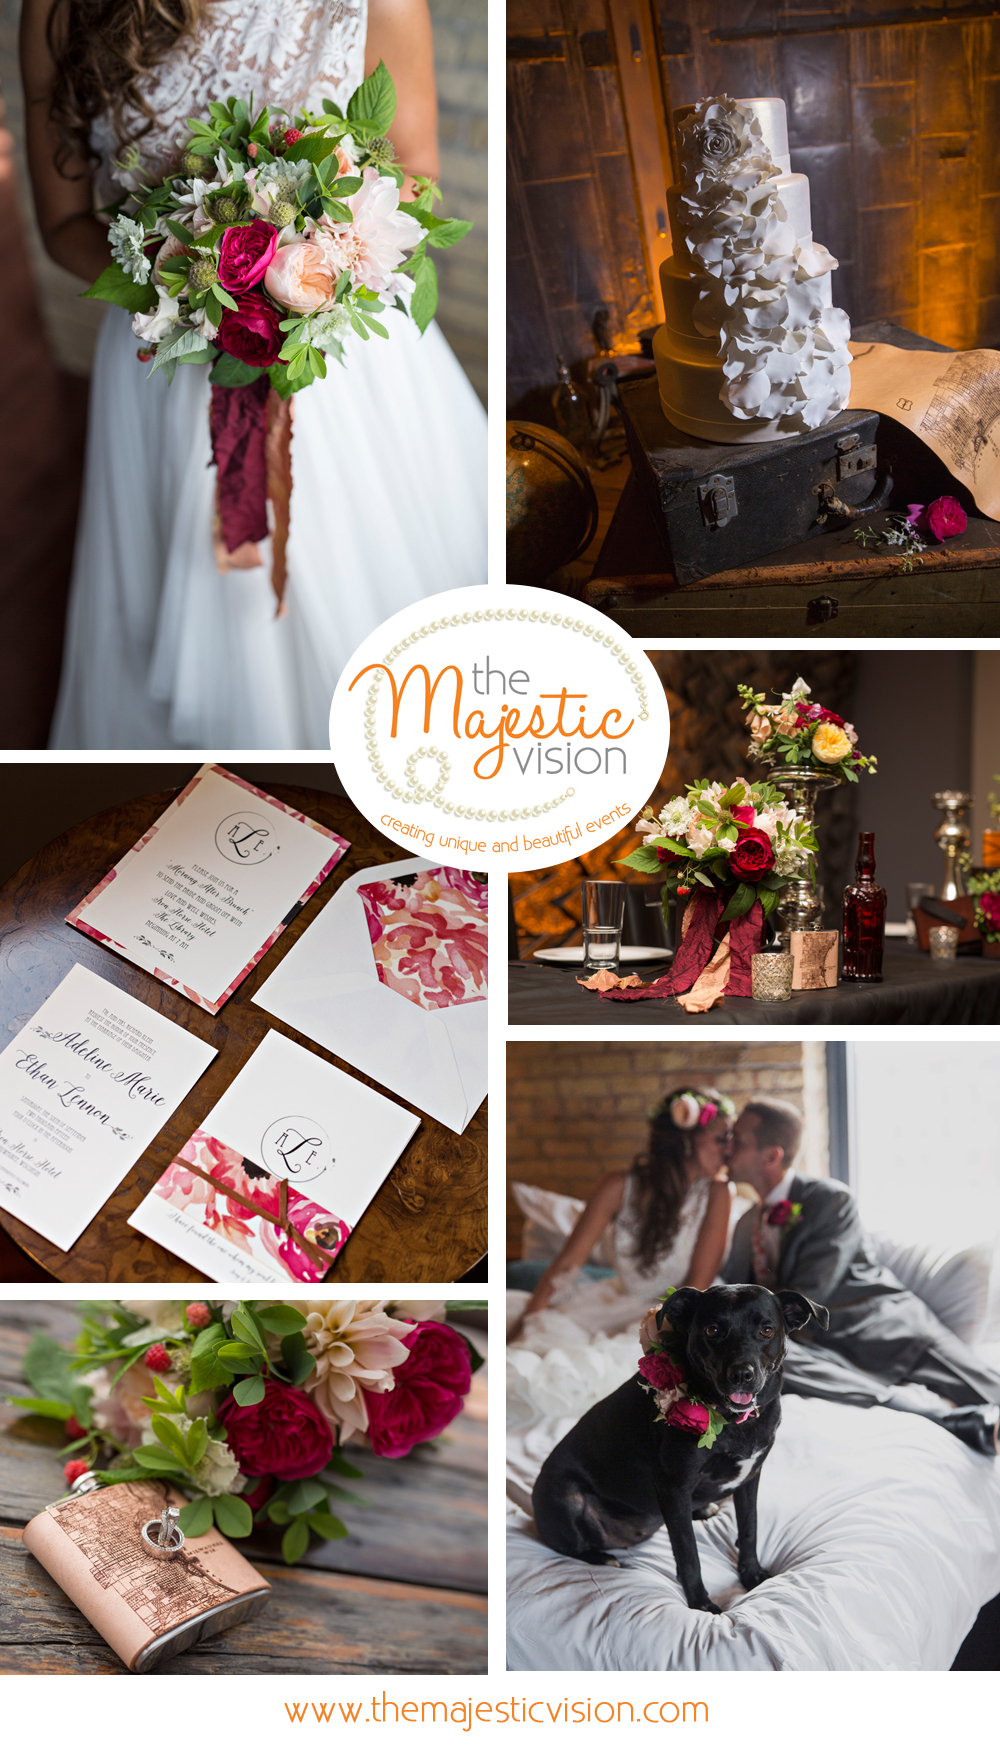 Romantic Floral Wedding | The Majestic Vision Wedding Planning | Iron Horse Hotel in Milwaukee, WI | www.themajesticvision.com | Shannon Wucherer Photography